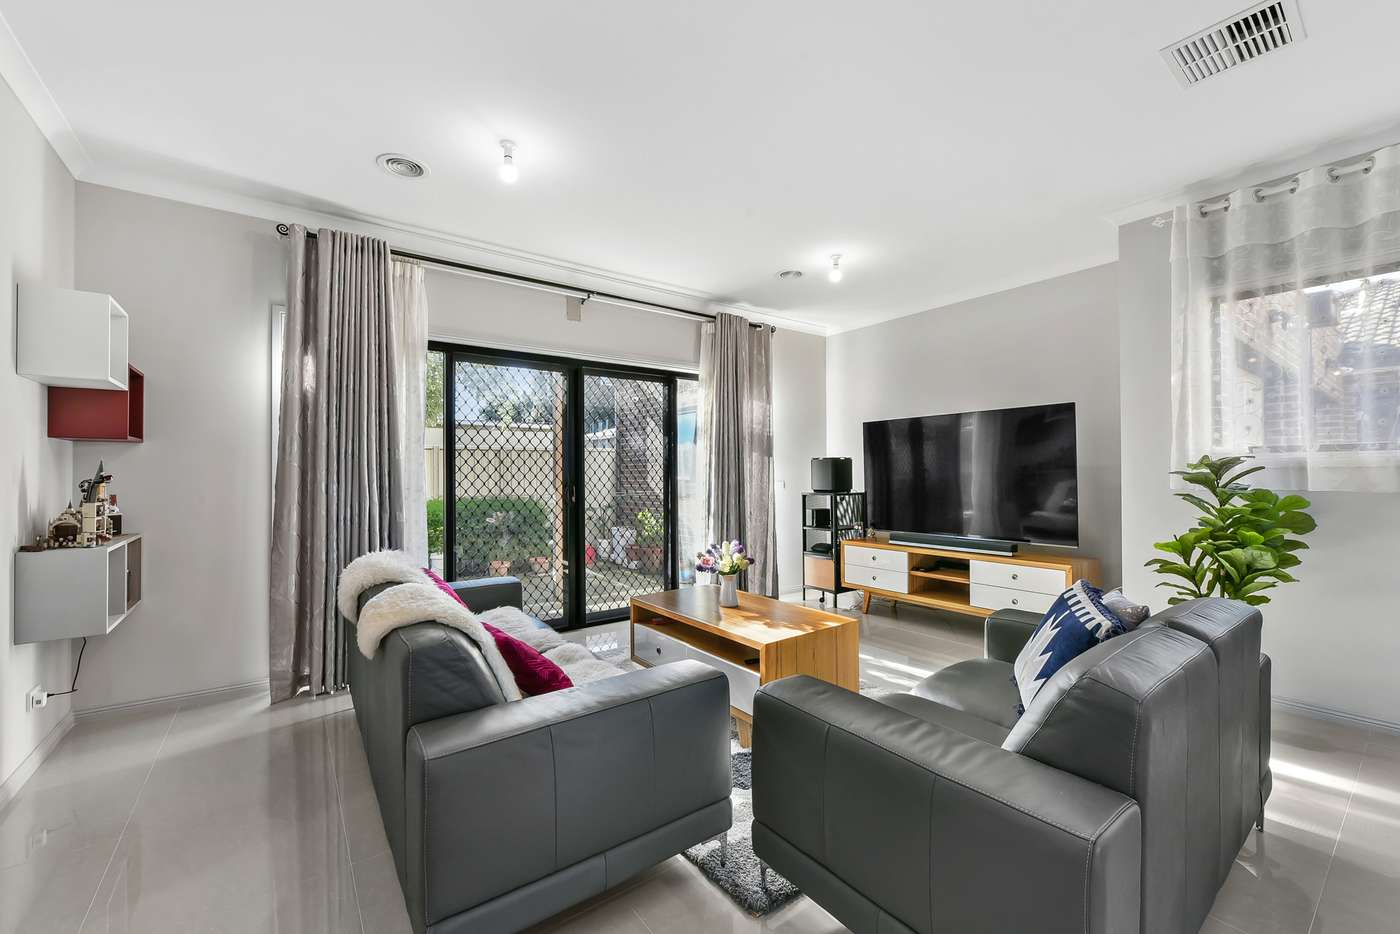 Sixth view of Homely townhouse listing, 2/11 Clive Street, Springvale VIC 3171